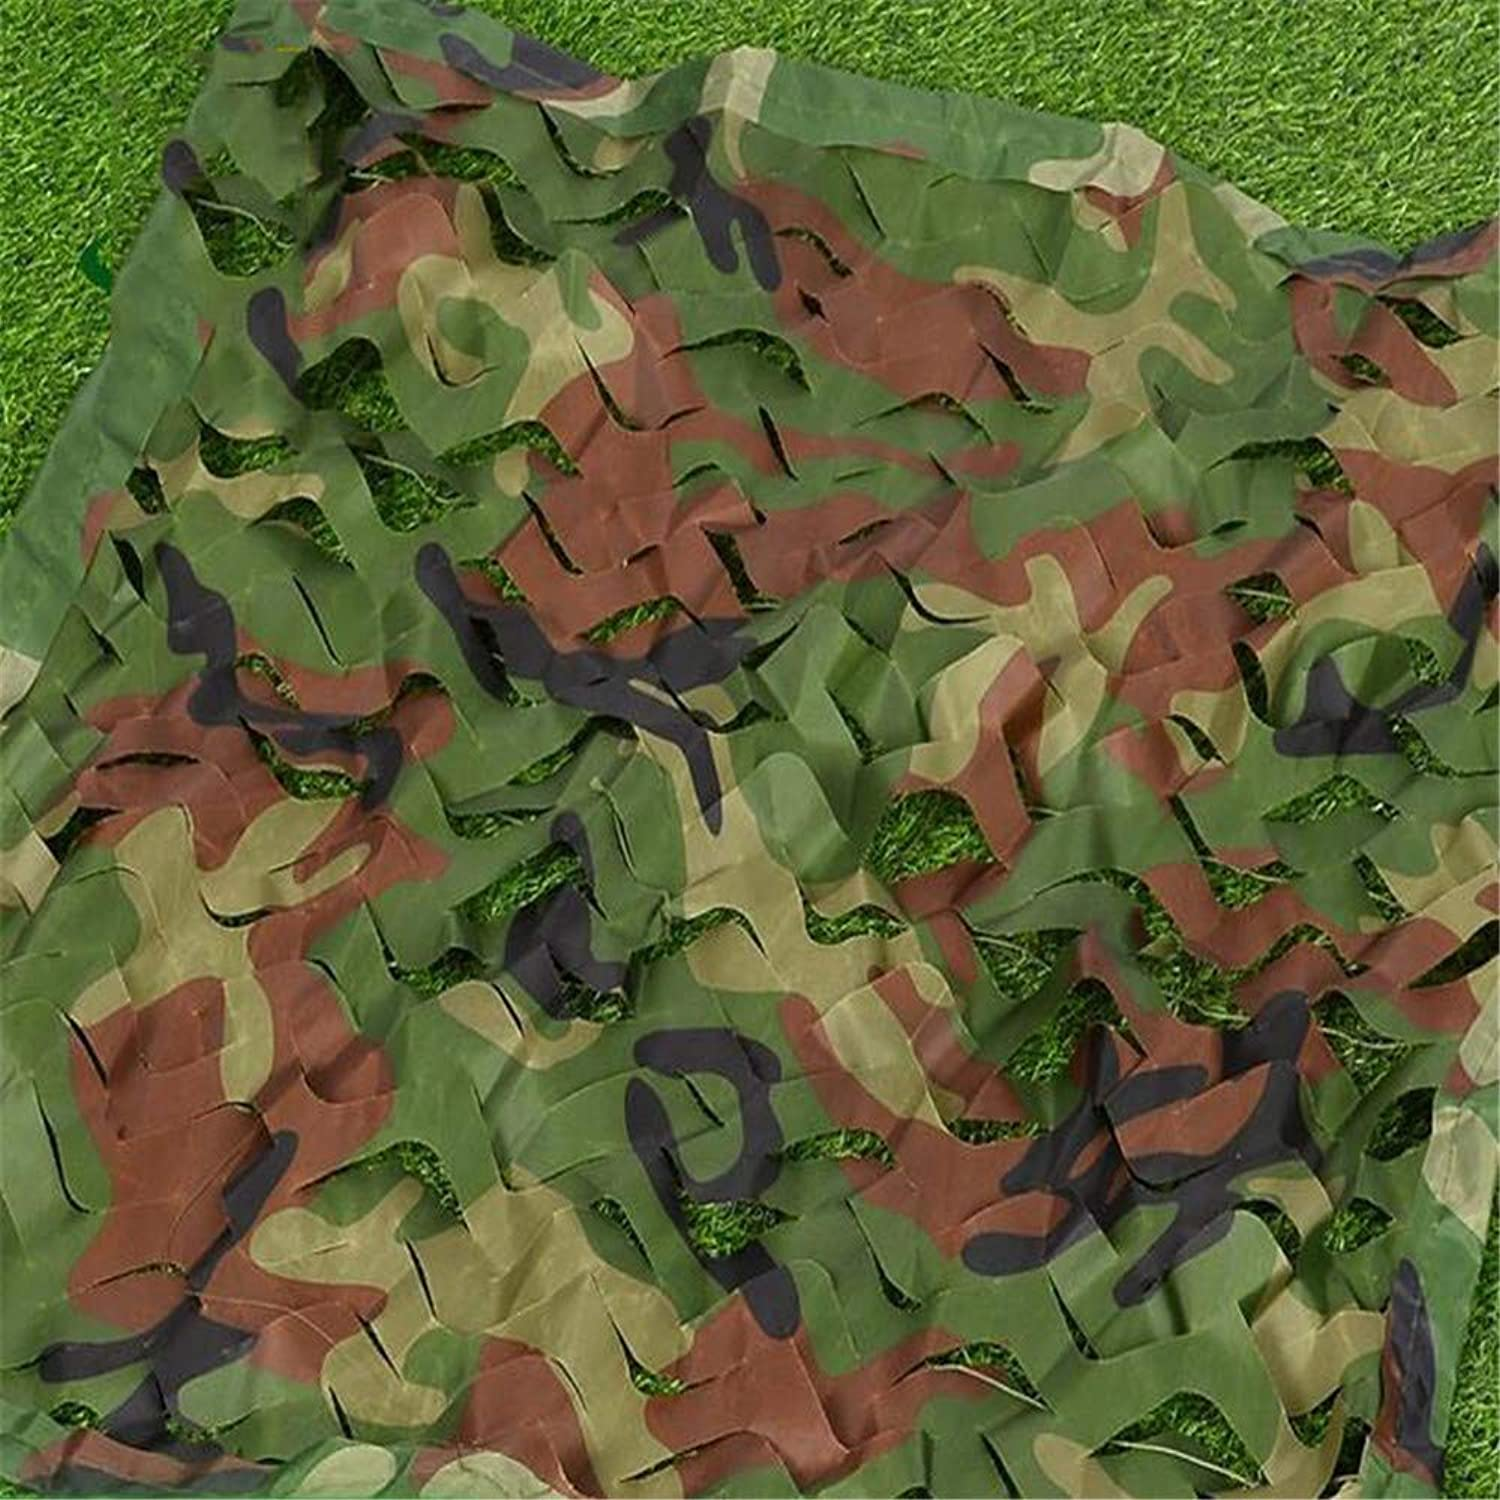 Jungle Camouflage Camouflage Net MultiSize SingleLayer Camouflage Net Camouflage Shade Net Sunscreen Hidden Cover Cloth